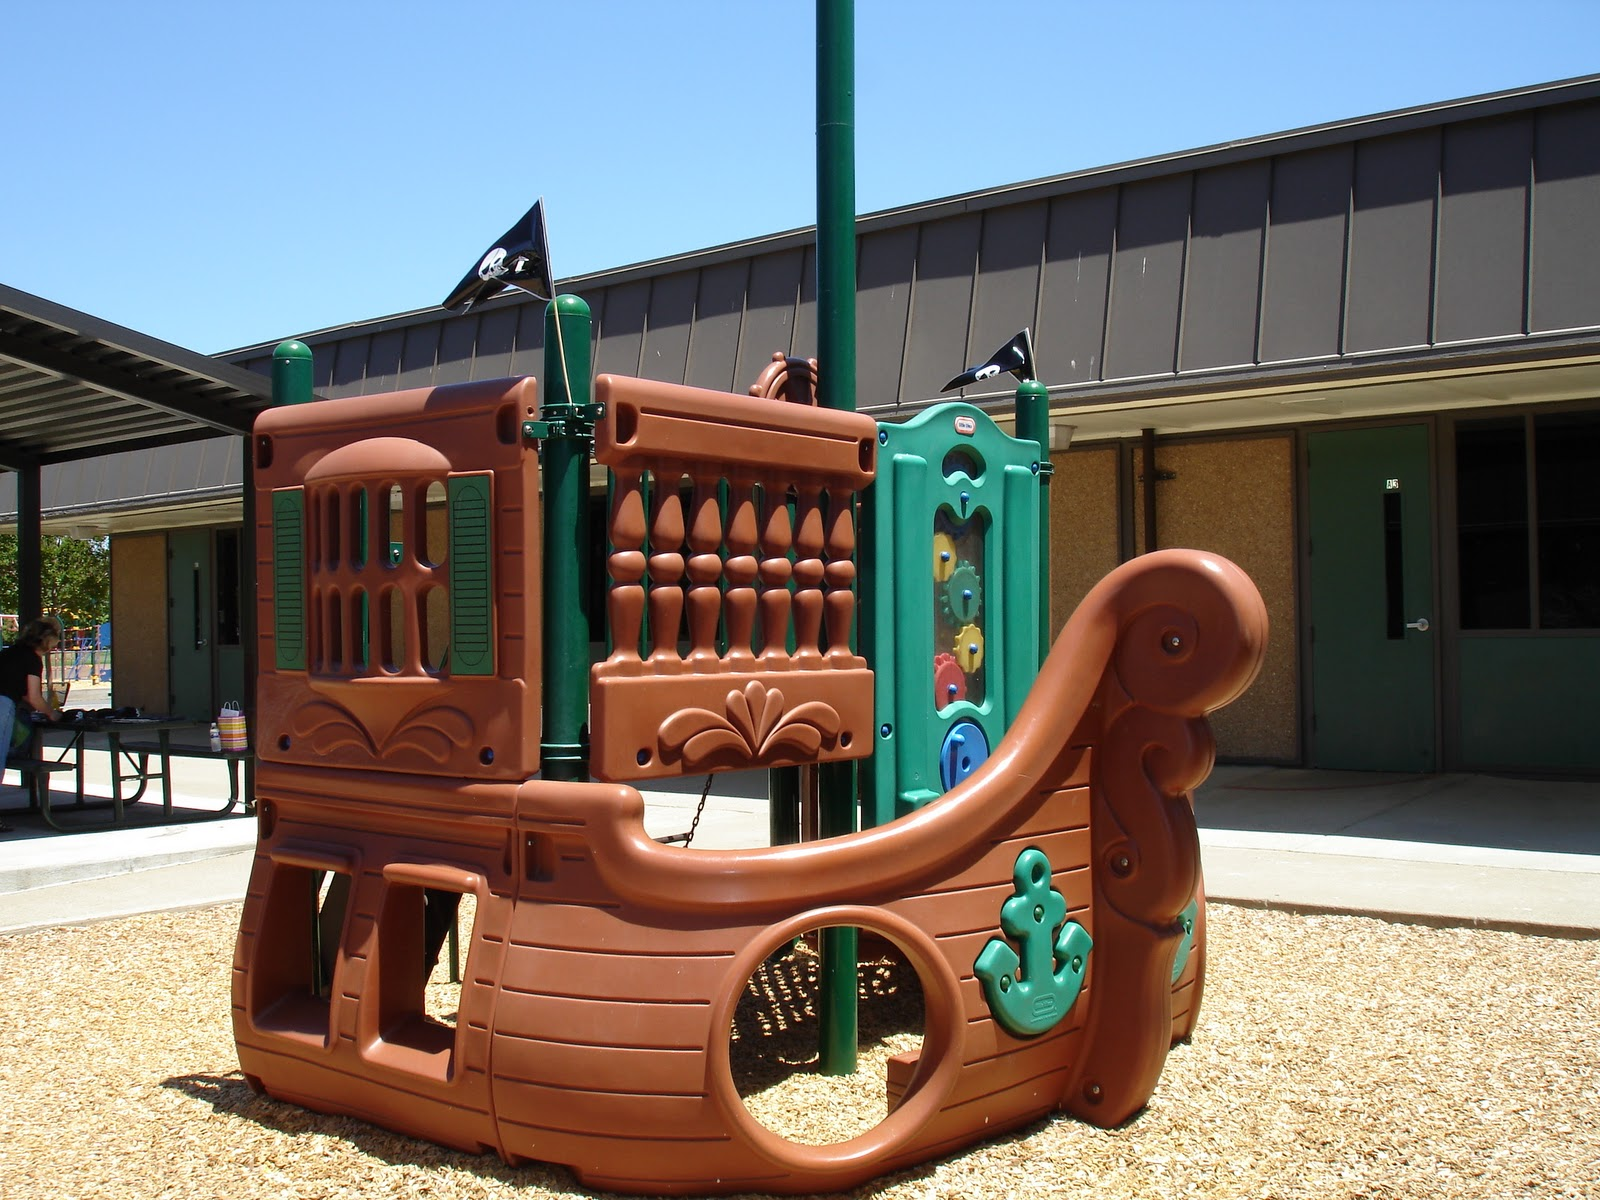 Pirate Ship Playhouse w' Slide - Discount Theme Bunk Beds Castle